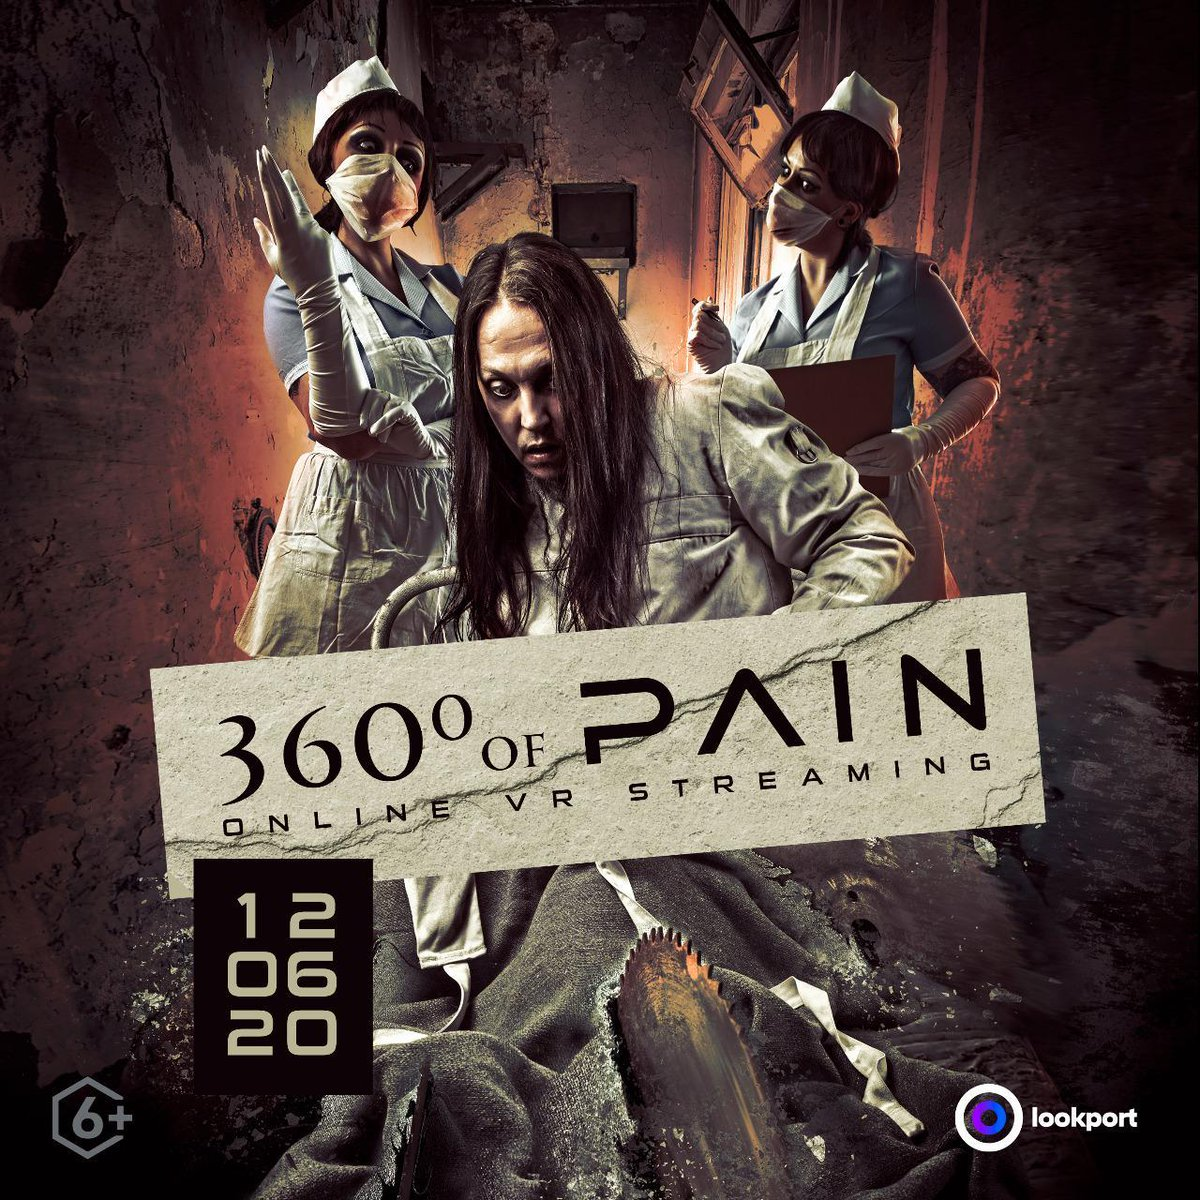 Tune in this Friday, June 12th at 10am Pacific / 1pm Eastern / 7pm CEST for a free 360° VR #PAIN concert in the legendary Abyss Studio!  Watch at: https://t.co/CUm66ZEMny https://t.co/ljrOtUZ60v https://t.co/4Ueoy03EjM  #PainBand #PeterTagtgren #PeterTägtgren #IndustrialMetal https://t.co/1yjIxDIQQT